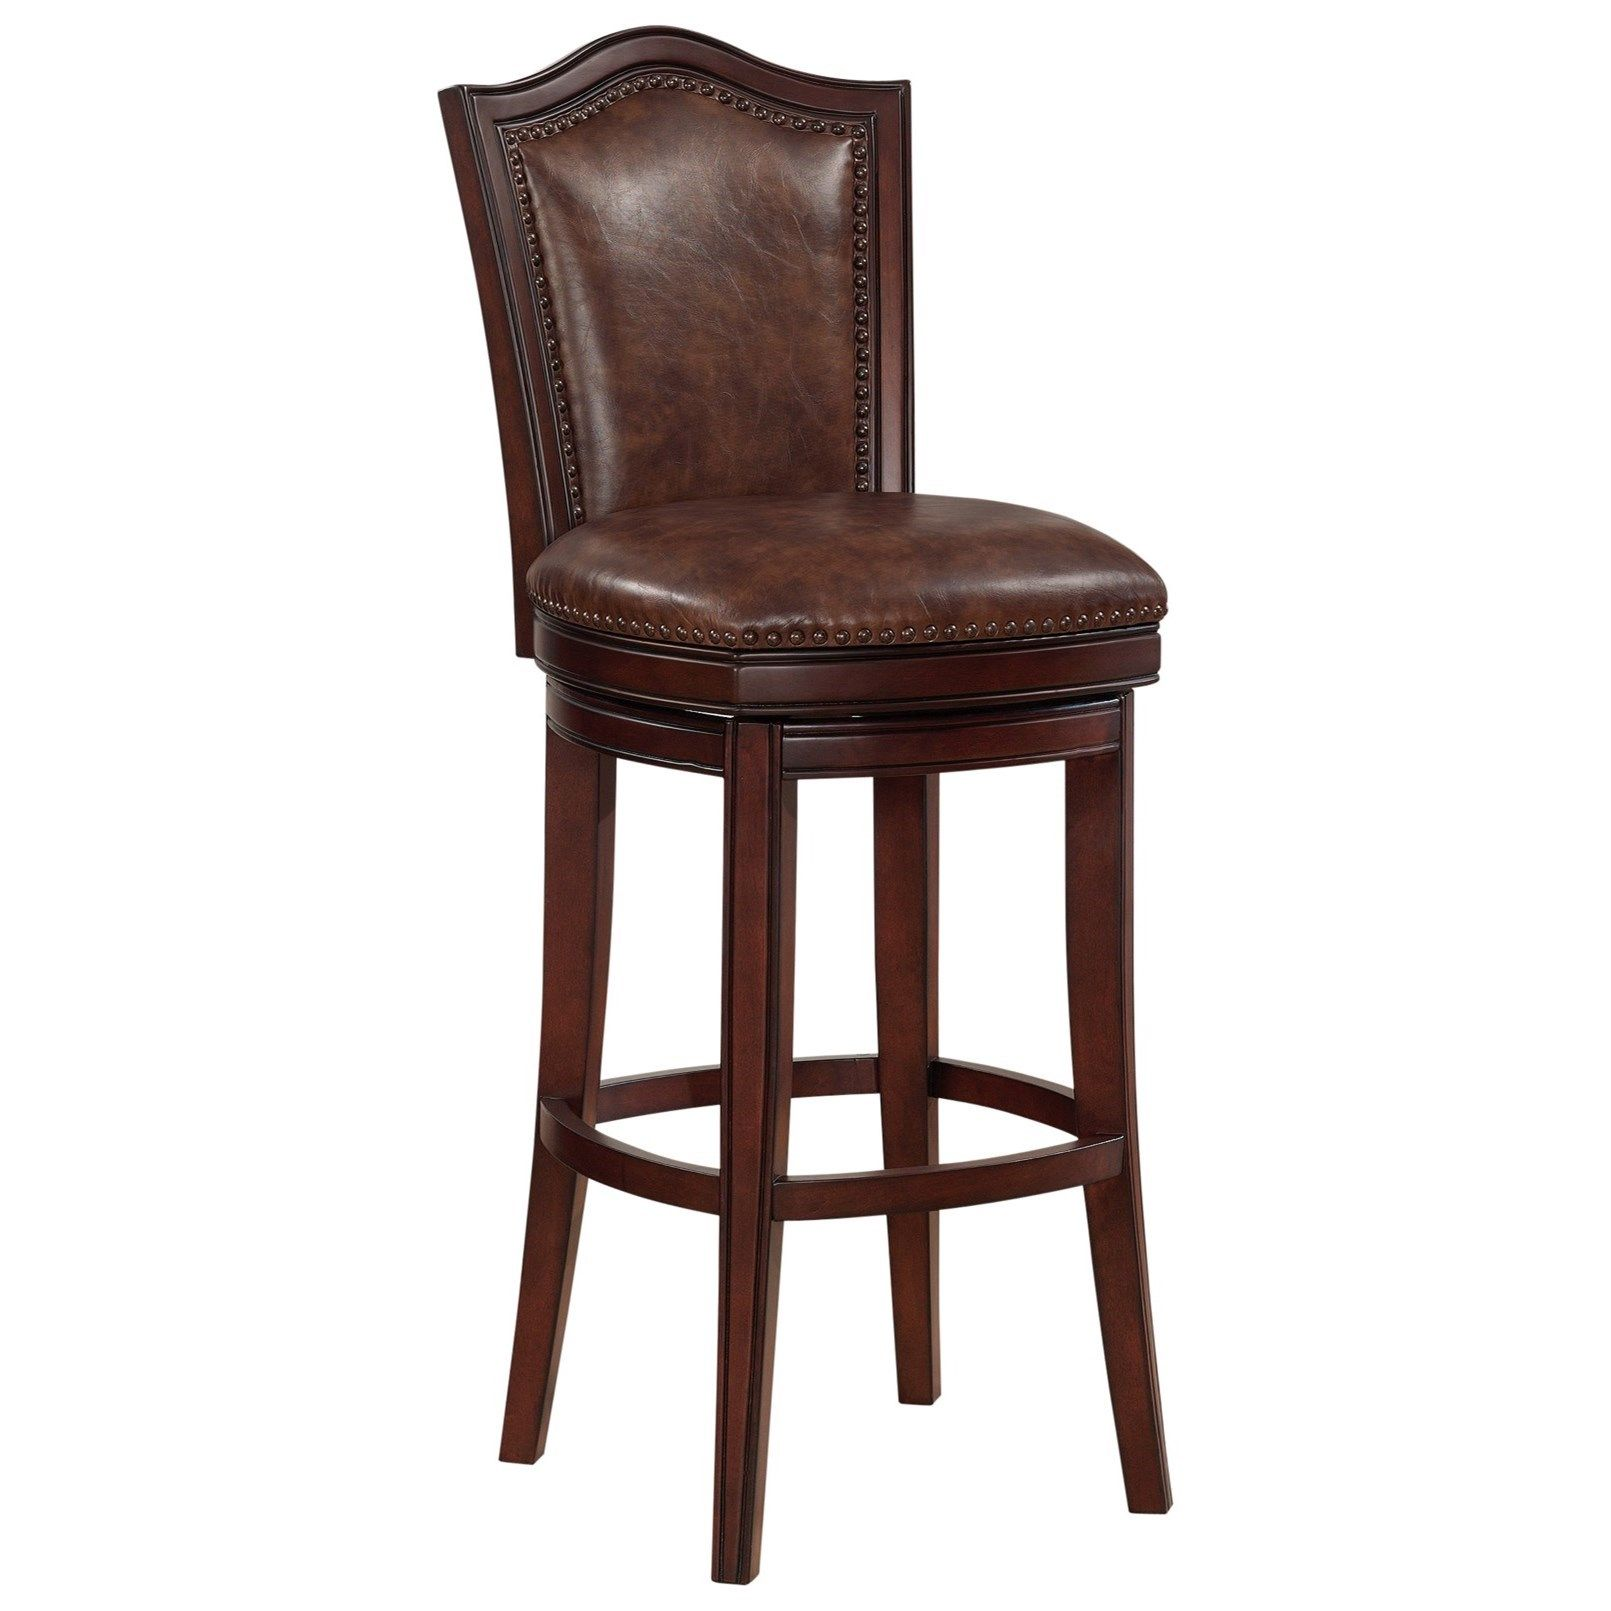 Jordan Upholstered Swivel Counter Height Stool With